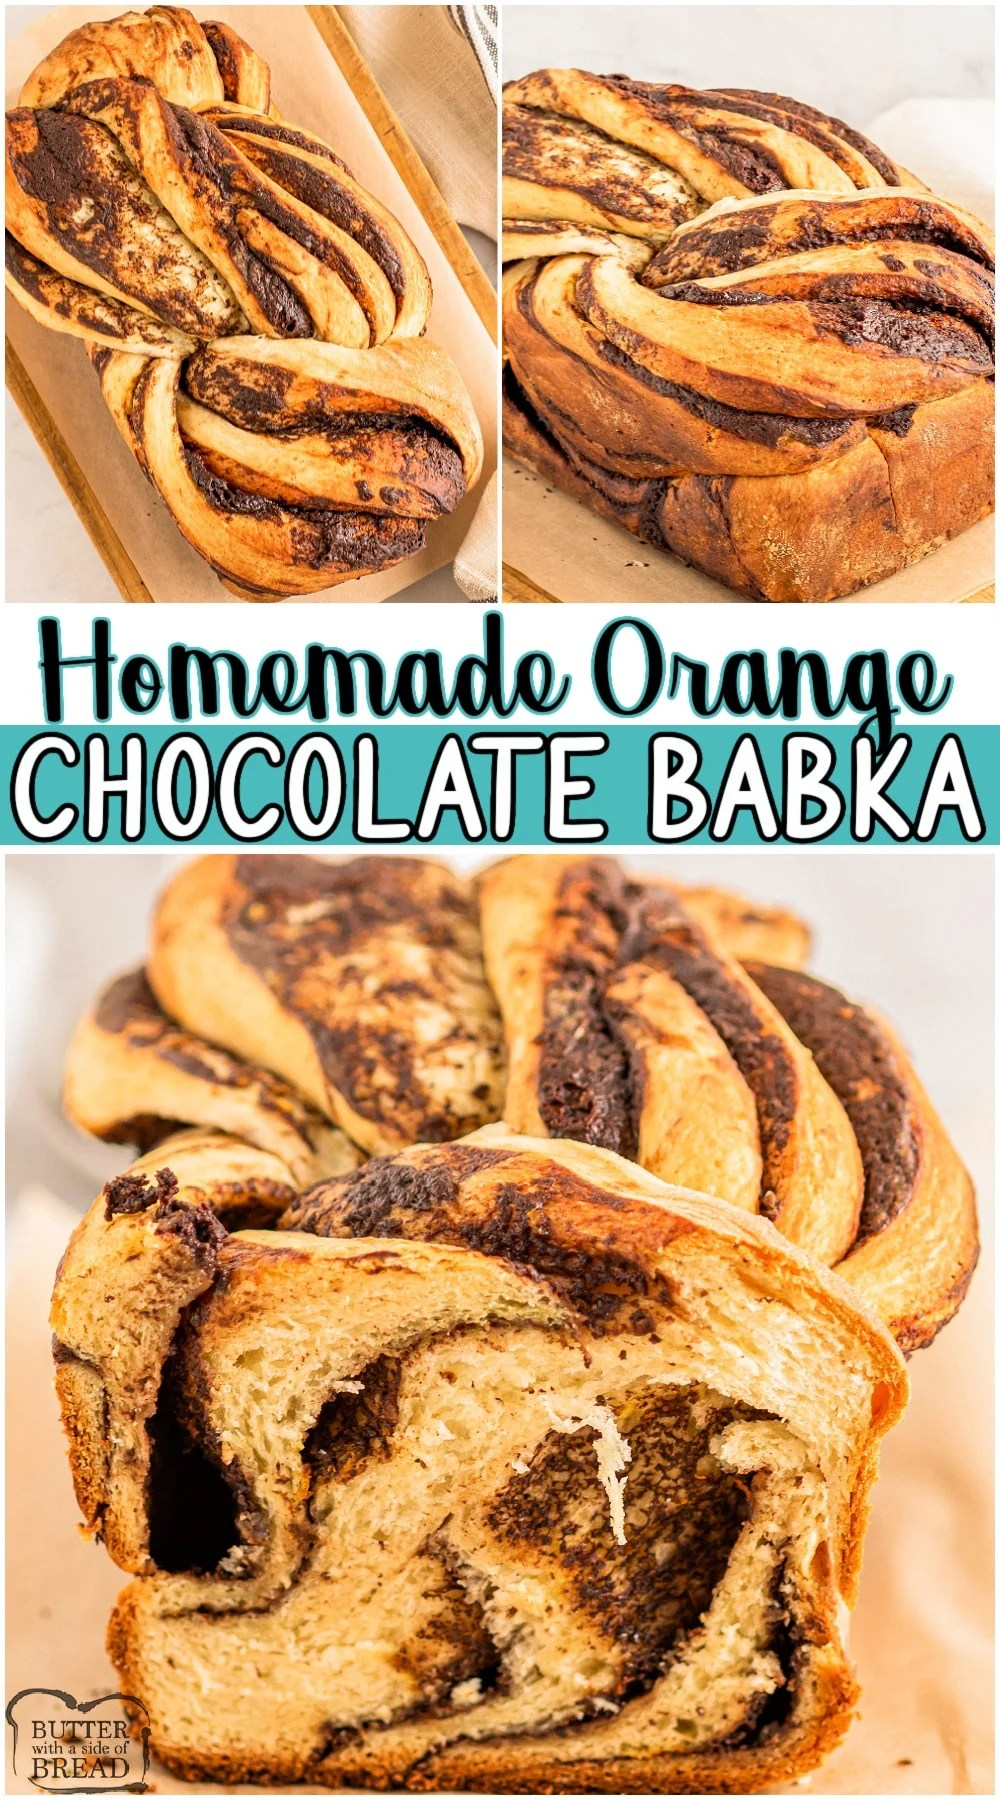 Homemade Chocolate Babka recipe with a bright fresh addition of orange zest! Lovely Babka bread braided with a layer of chocolate ganache for a delicious sweet bread that everyone loves! #bread #babka #chocolate #orange #baking #easyrecipe from BUTTER WITH A SIDE OF BREAD